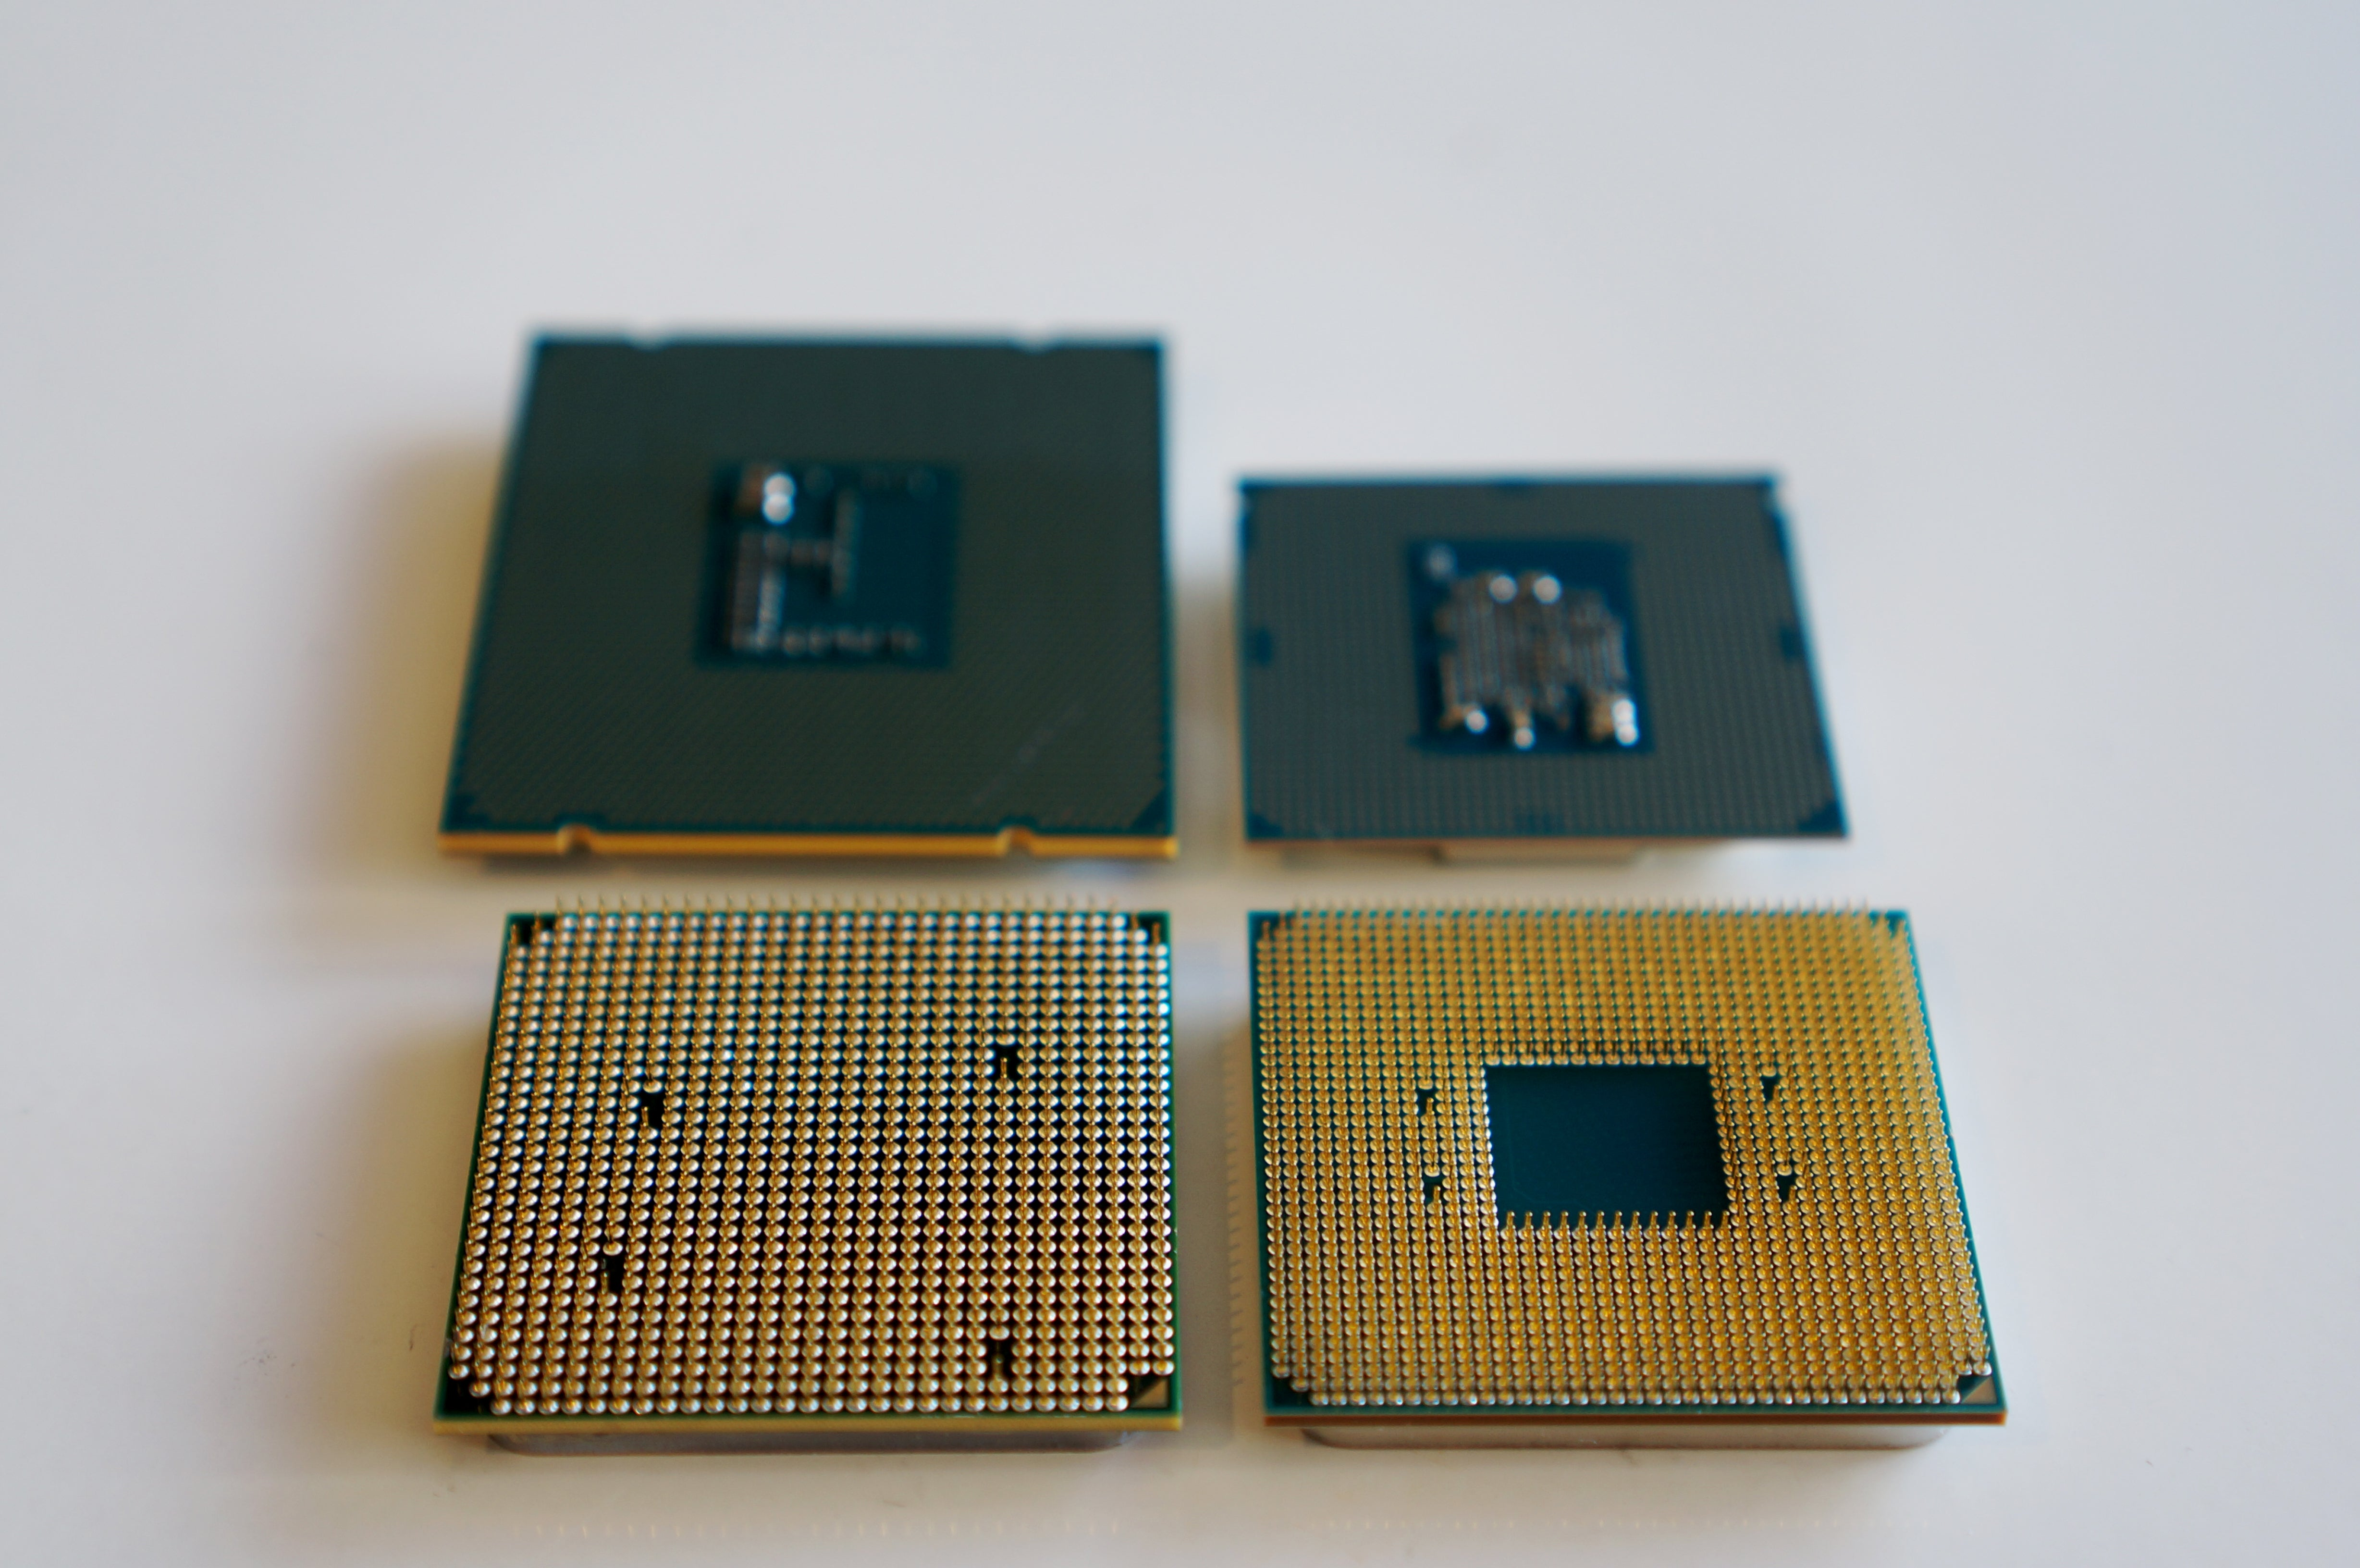 Ryzen Review Amd Is Back Idg Connect Circuit Tracker And Breaker Finder Testers Amazon Gordon Mah Ung